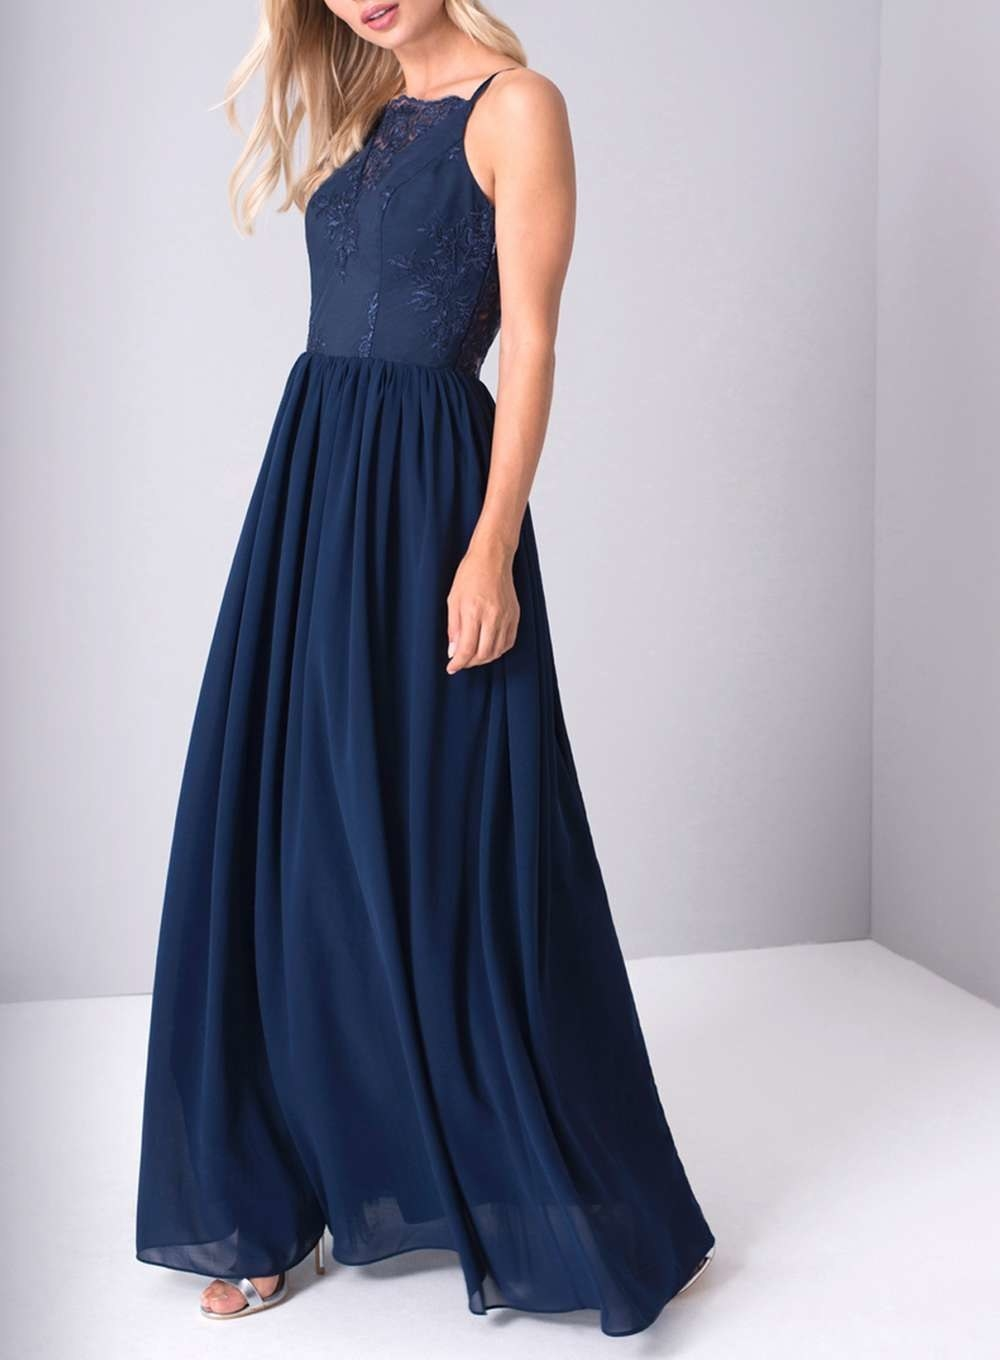 ef5360ae89be0 Dorthy Perkins — a retailer offering traditional gowns in straight